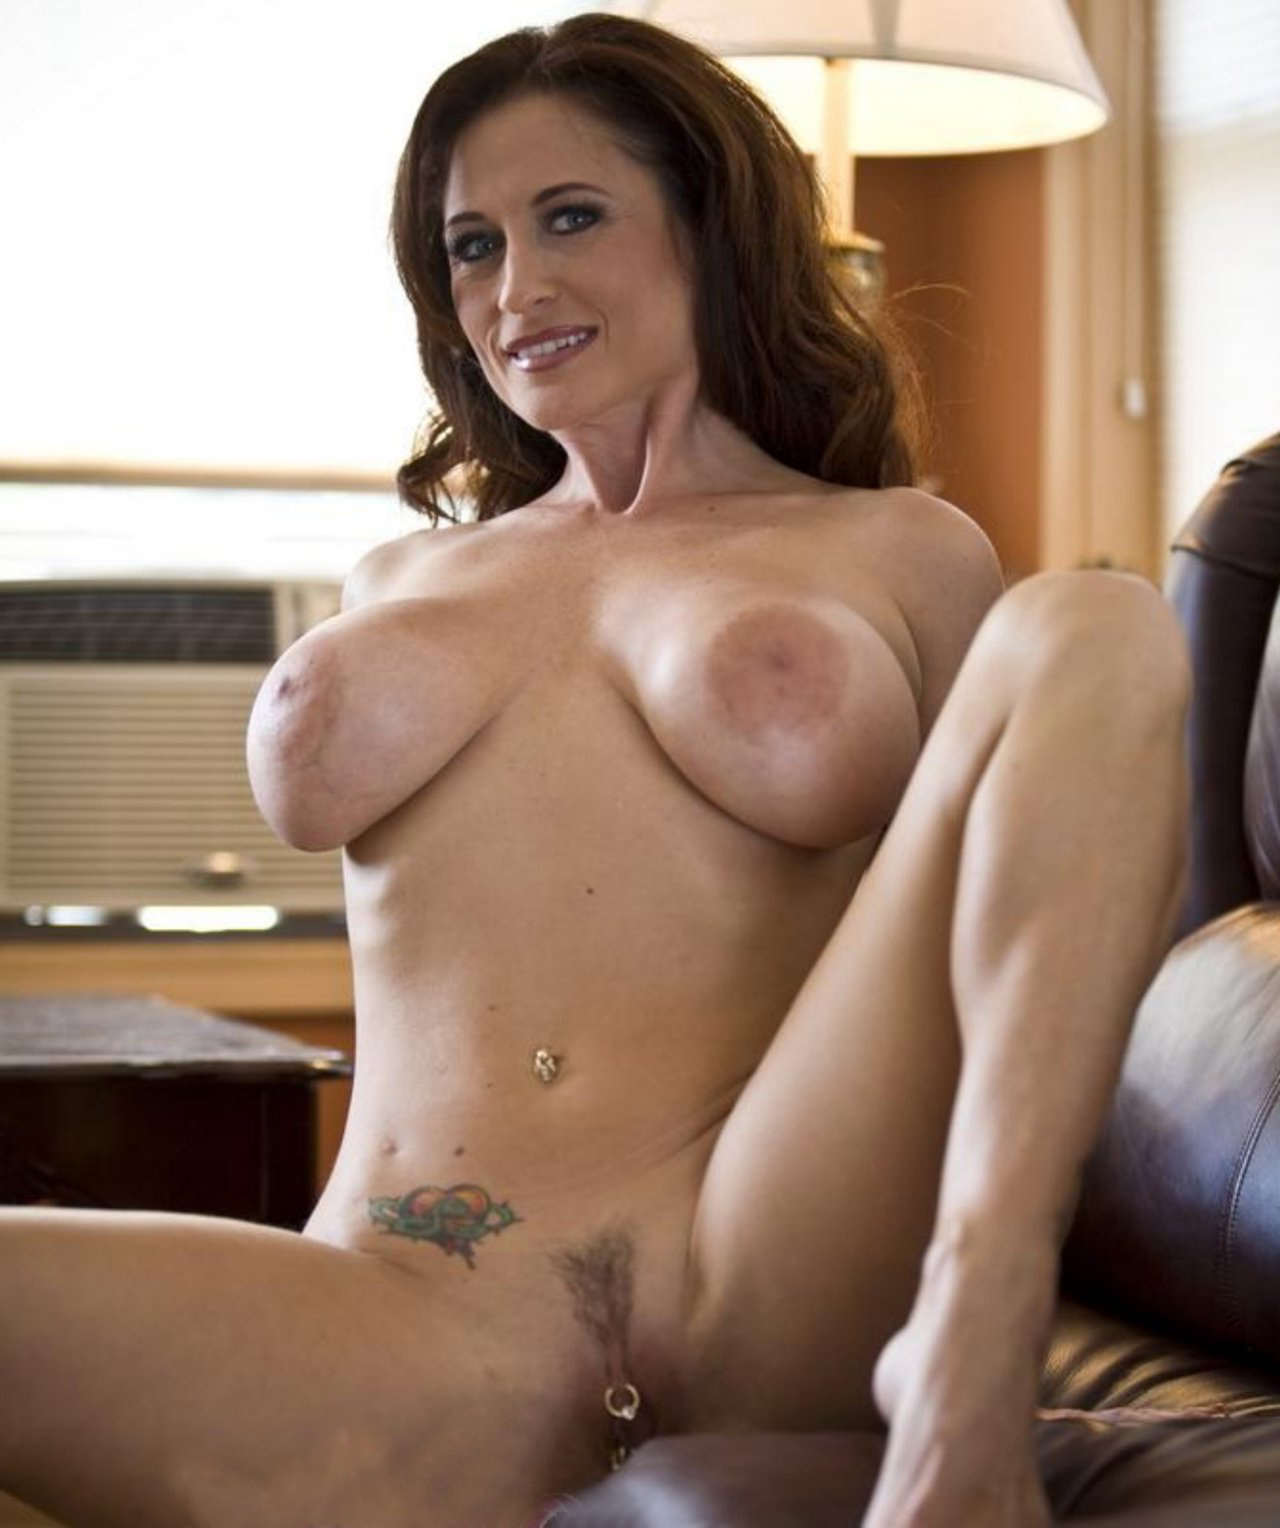 Pussy over 40 HQ Mature